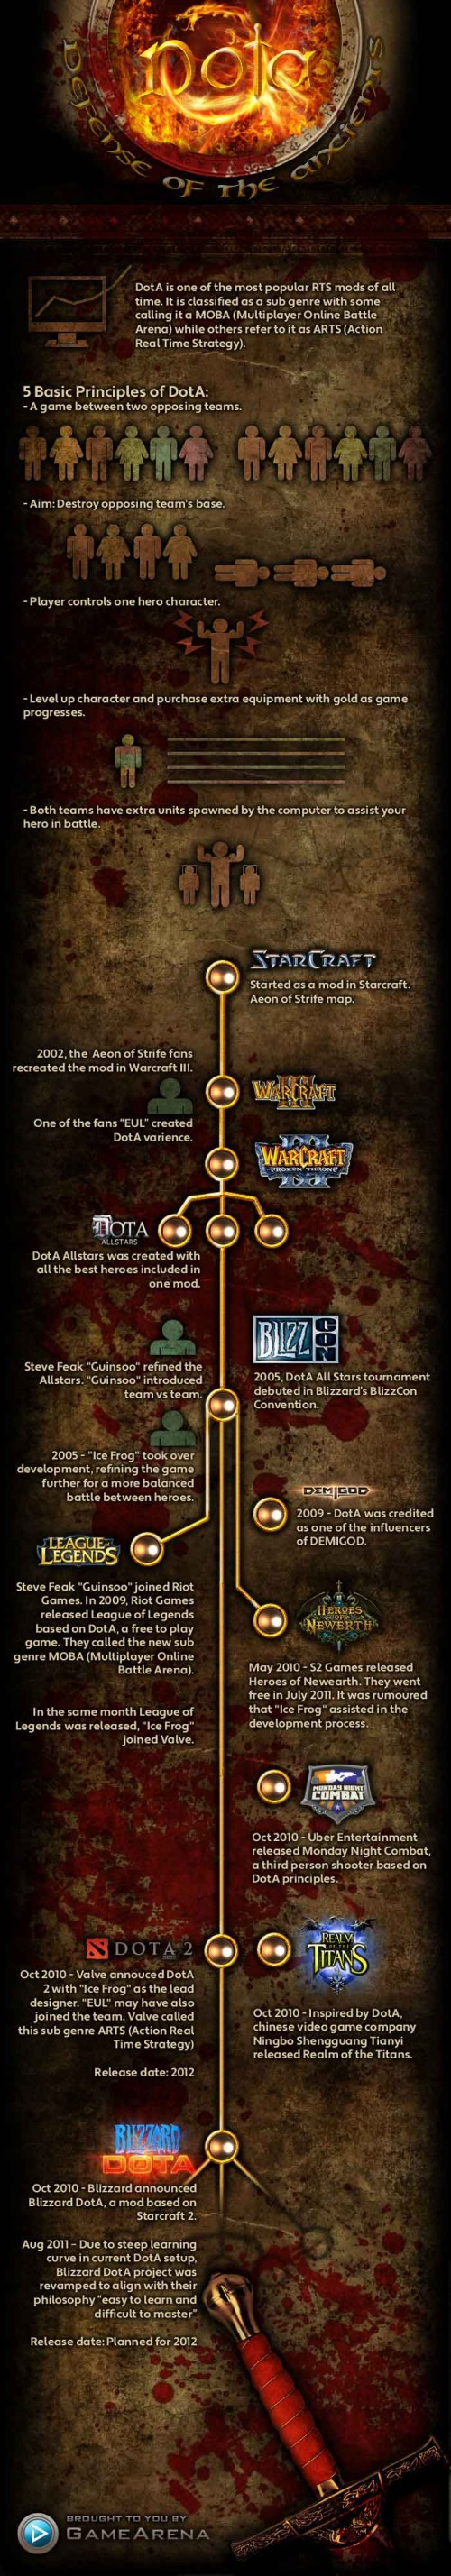 Defense Of The Ancients Dota Infographic Cool Infographics